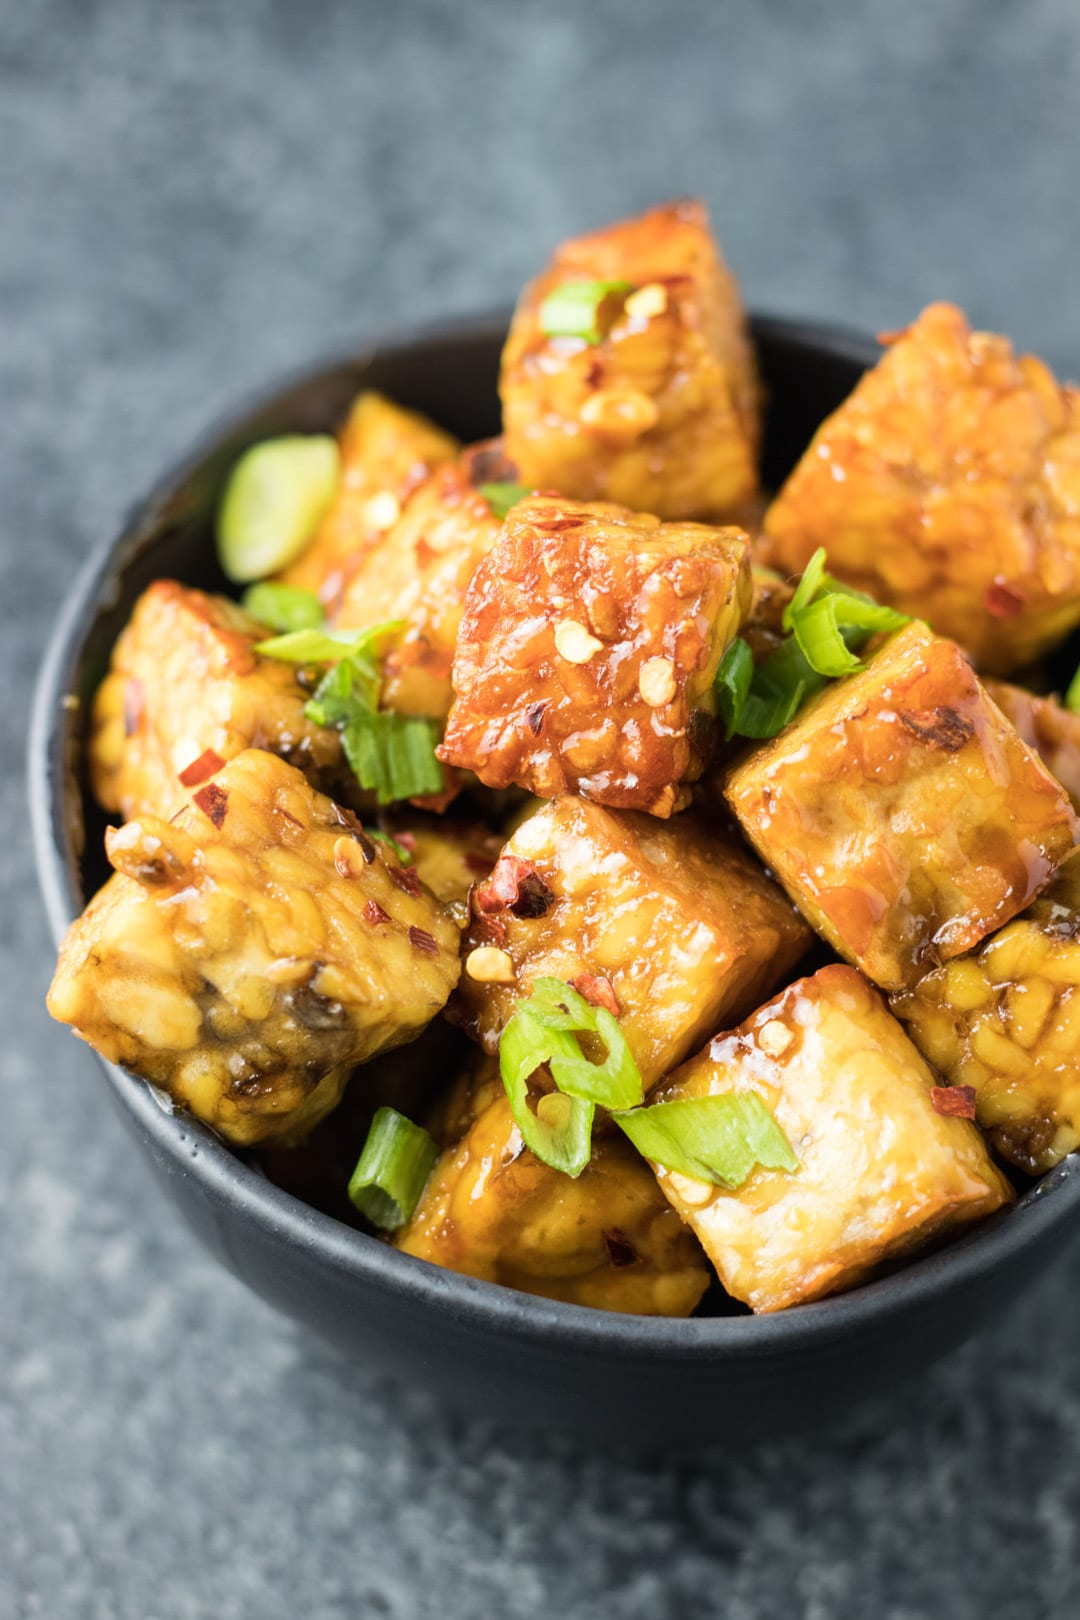 A bowl of seared tempeh cubes tossed in a maple-soy glaze and topped with sliced green onions